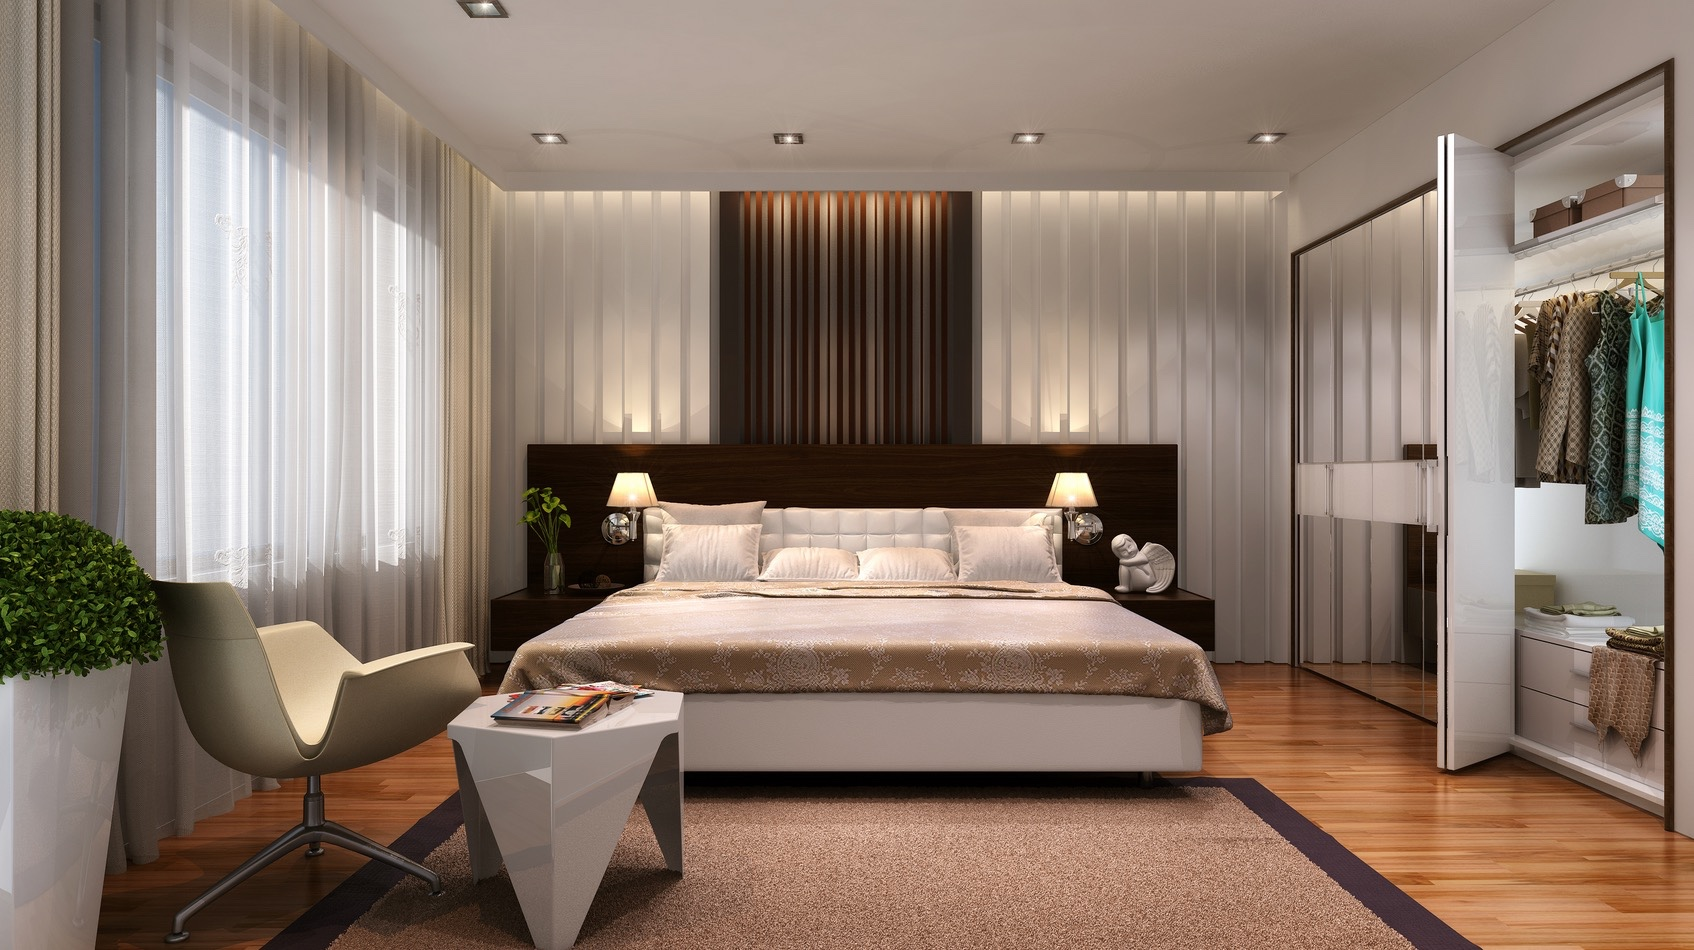 21 cool bedrooms for clean and simple design inspiration rh home designing com simple design of bedroom cupboards simple design of 3 bedroom house